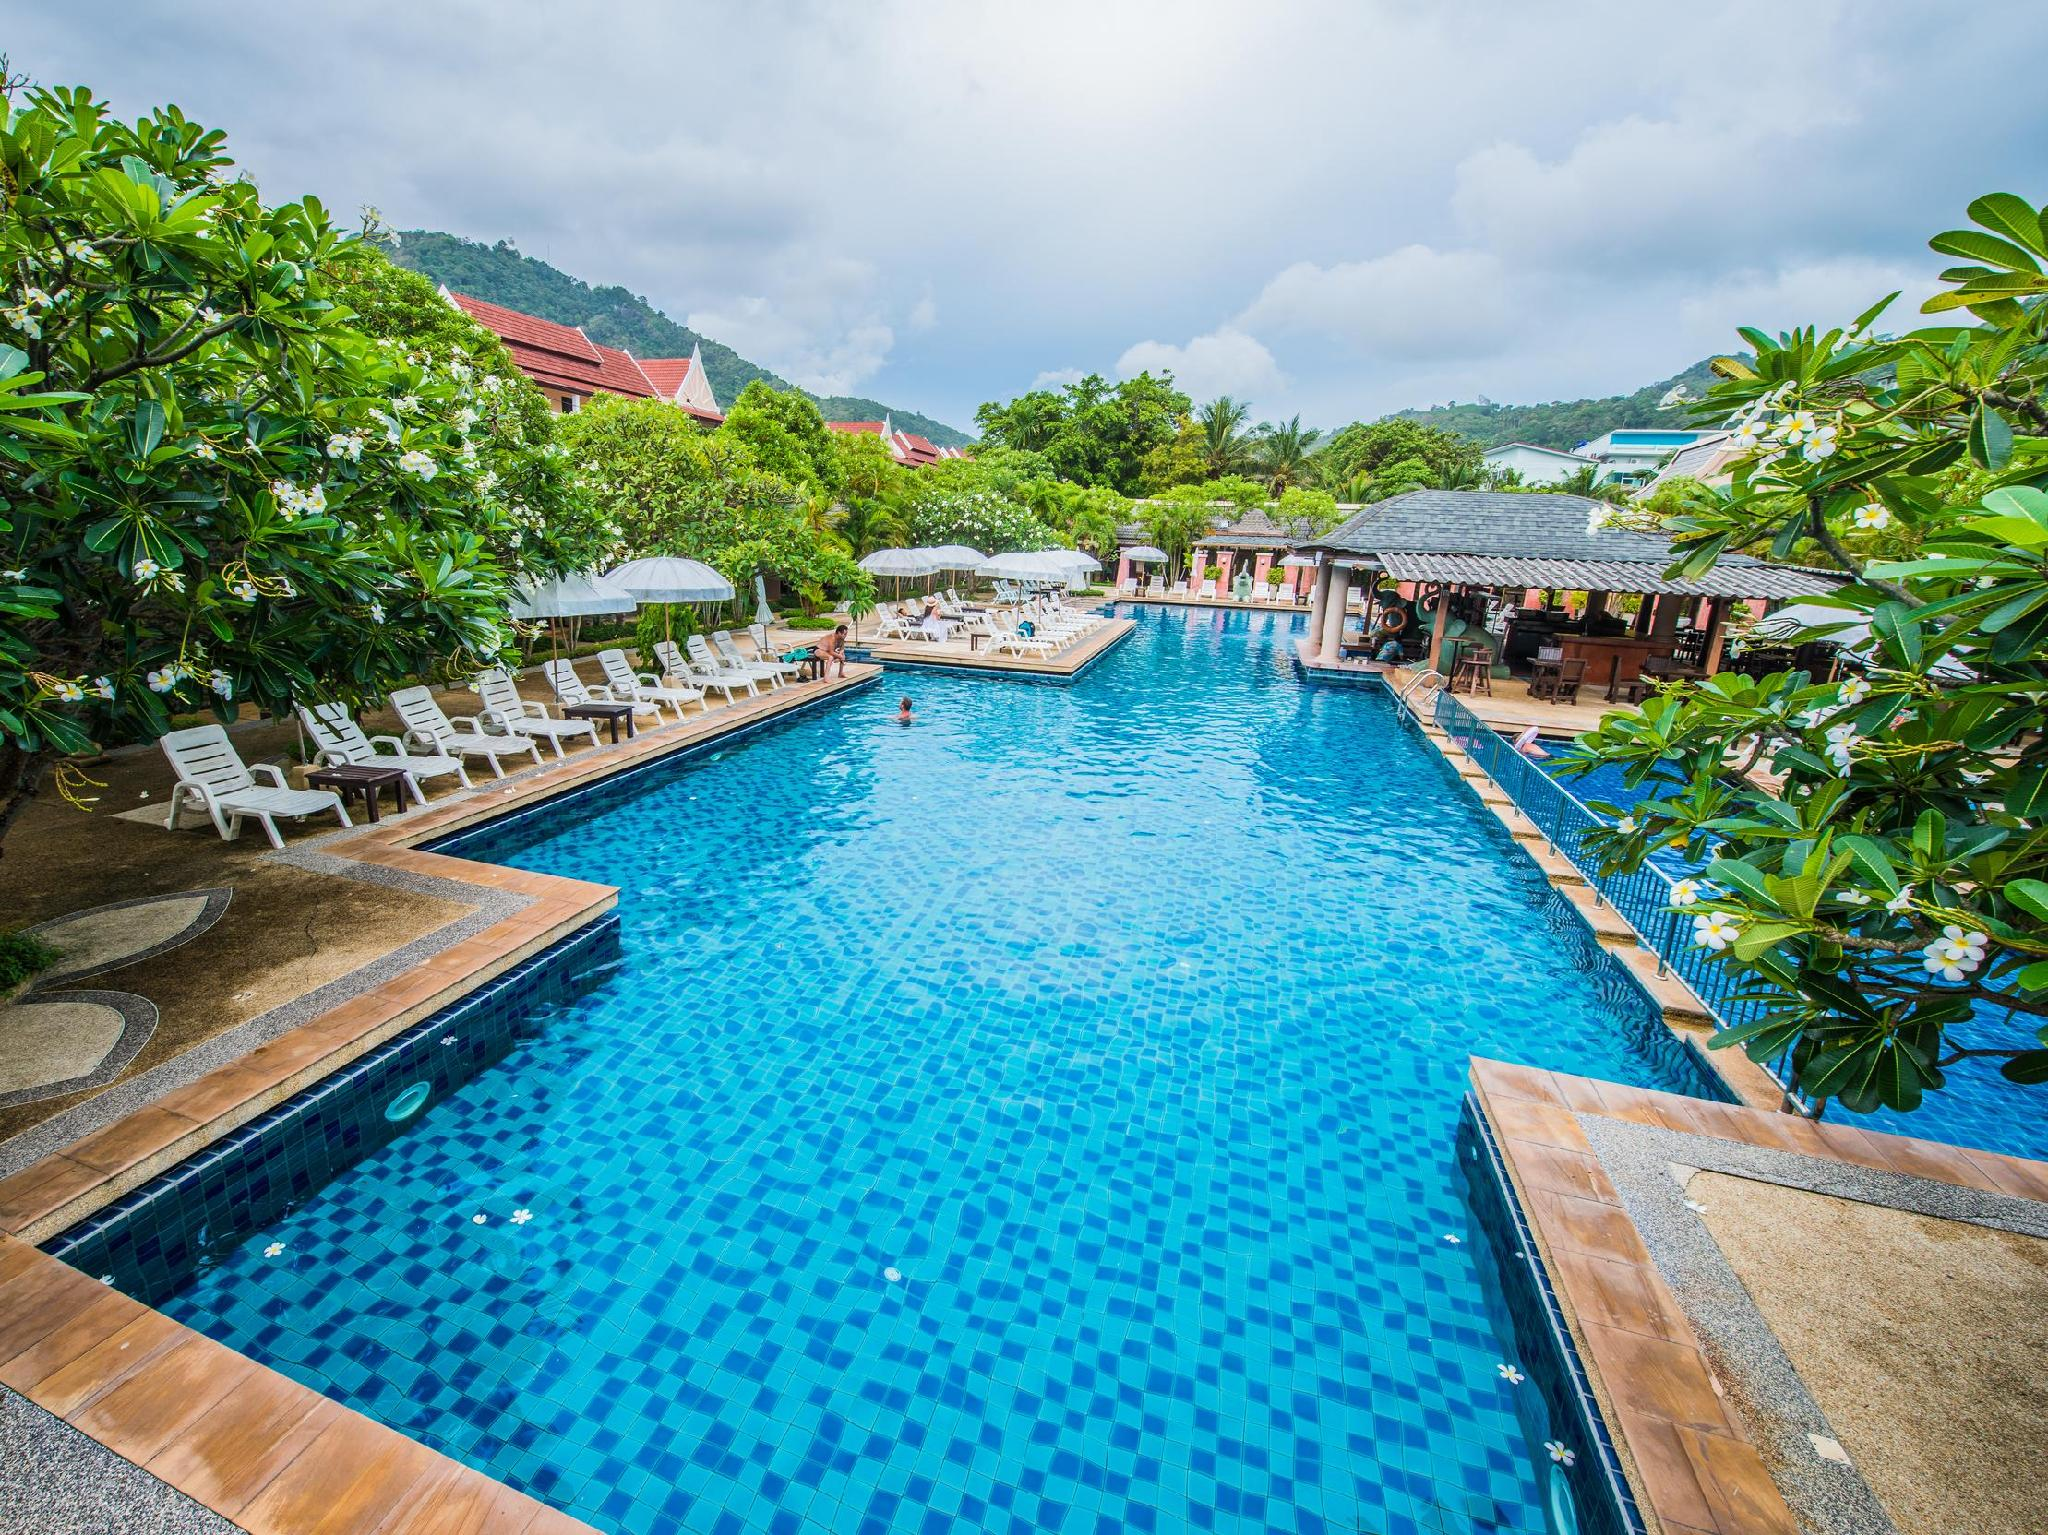 Kata Pool Lagoon Phuket - Interno dell'Hotel